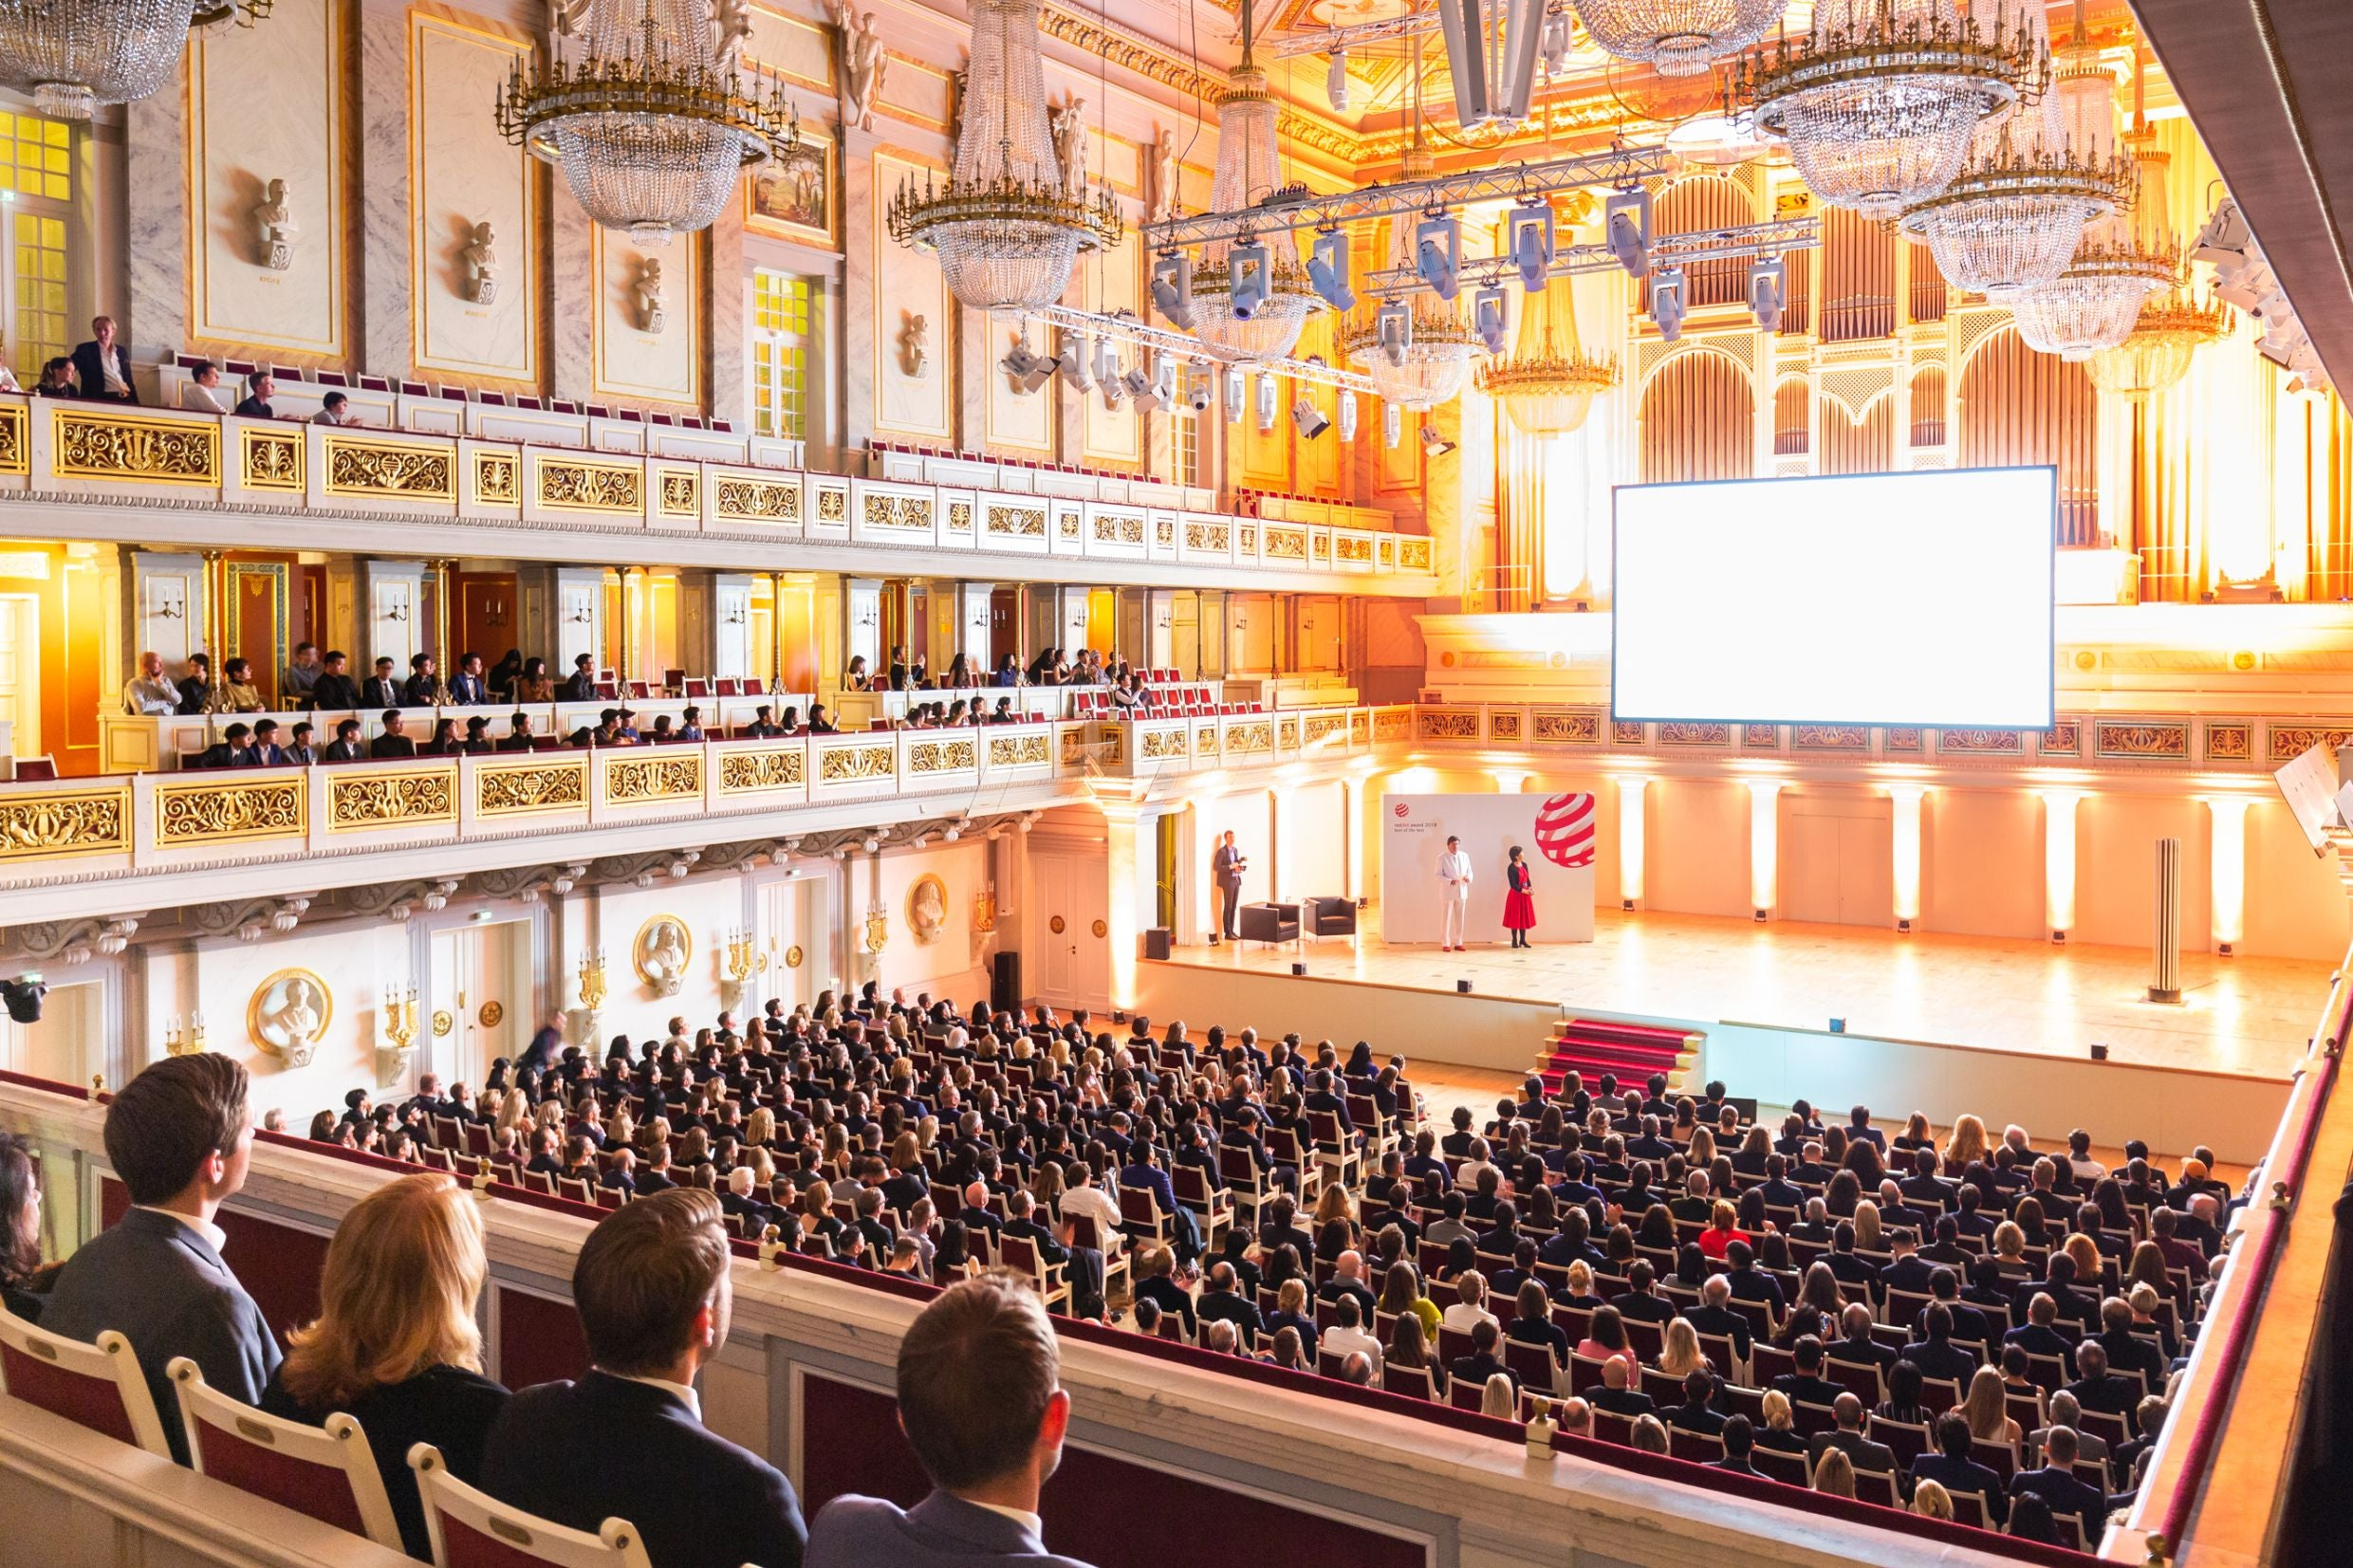 Red Dot Gala at Konzerthaus Berlin